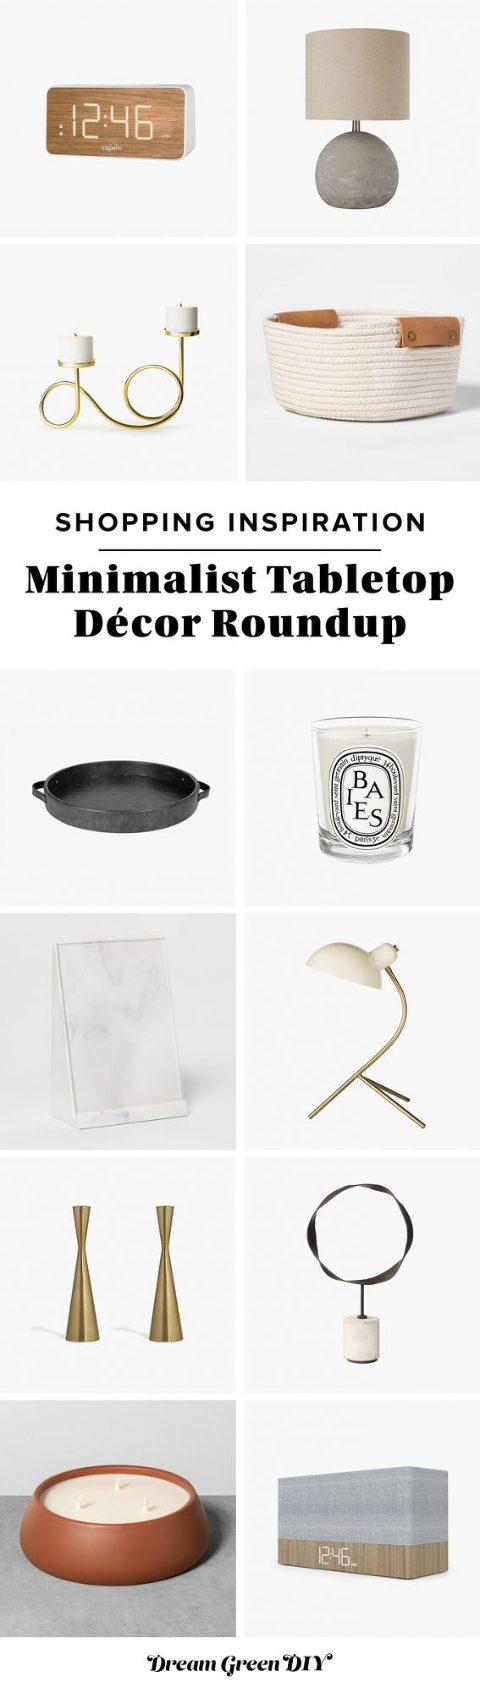 Minimalist Tabletop Décor Roundup